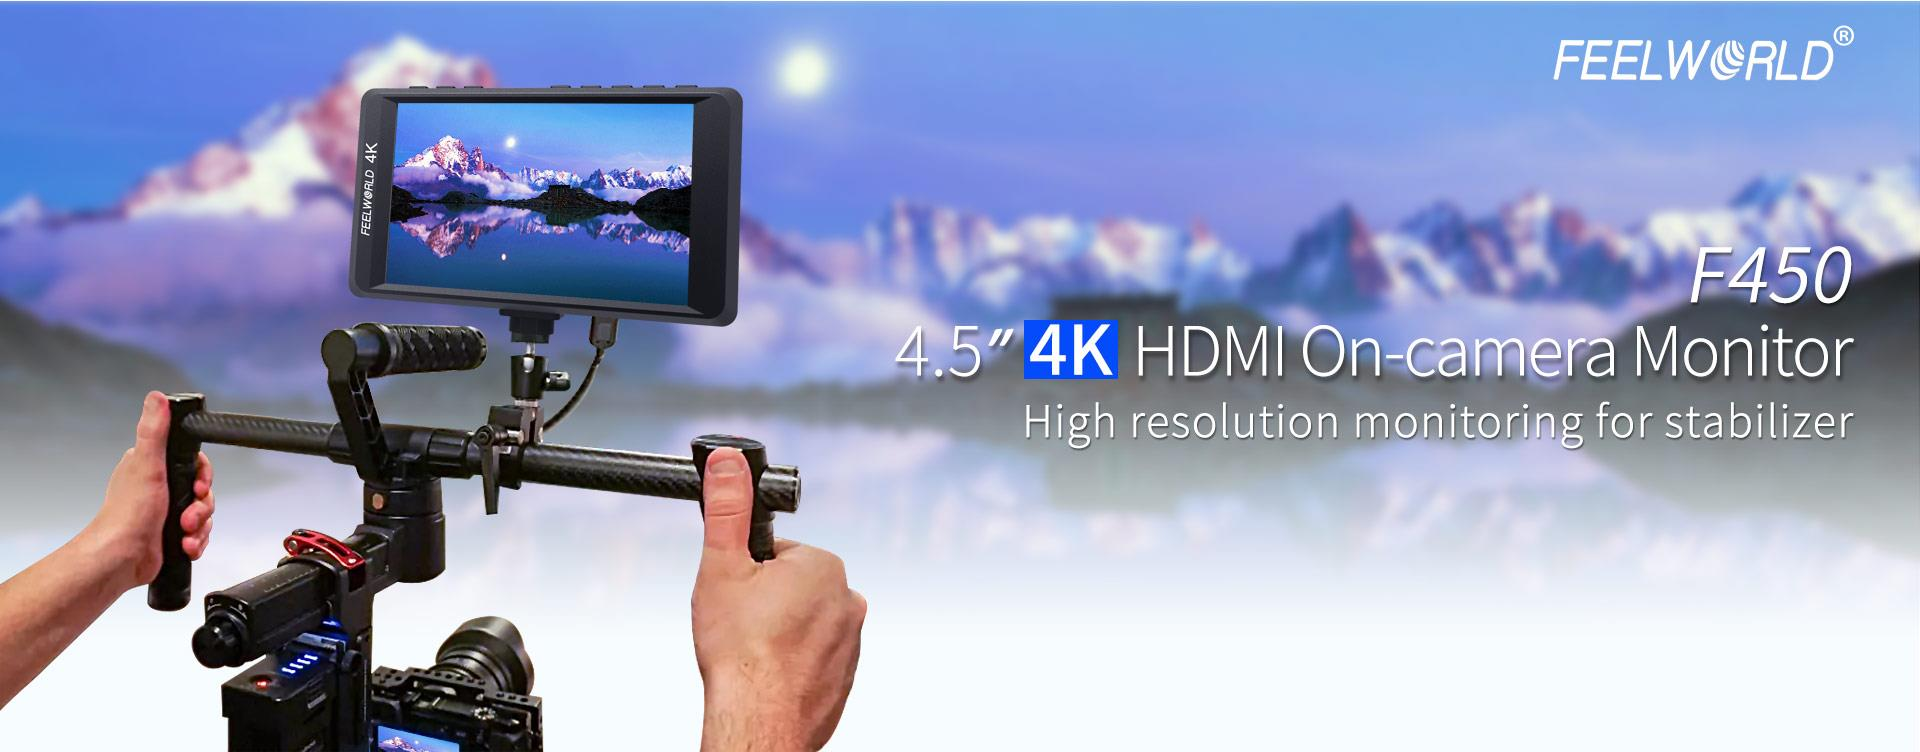 feelworld-45-inch-4k-hdmi-on-camera-monitor